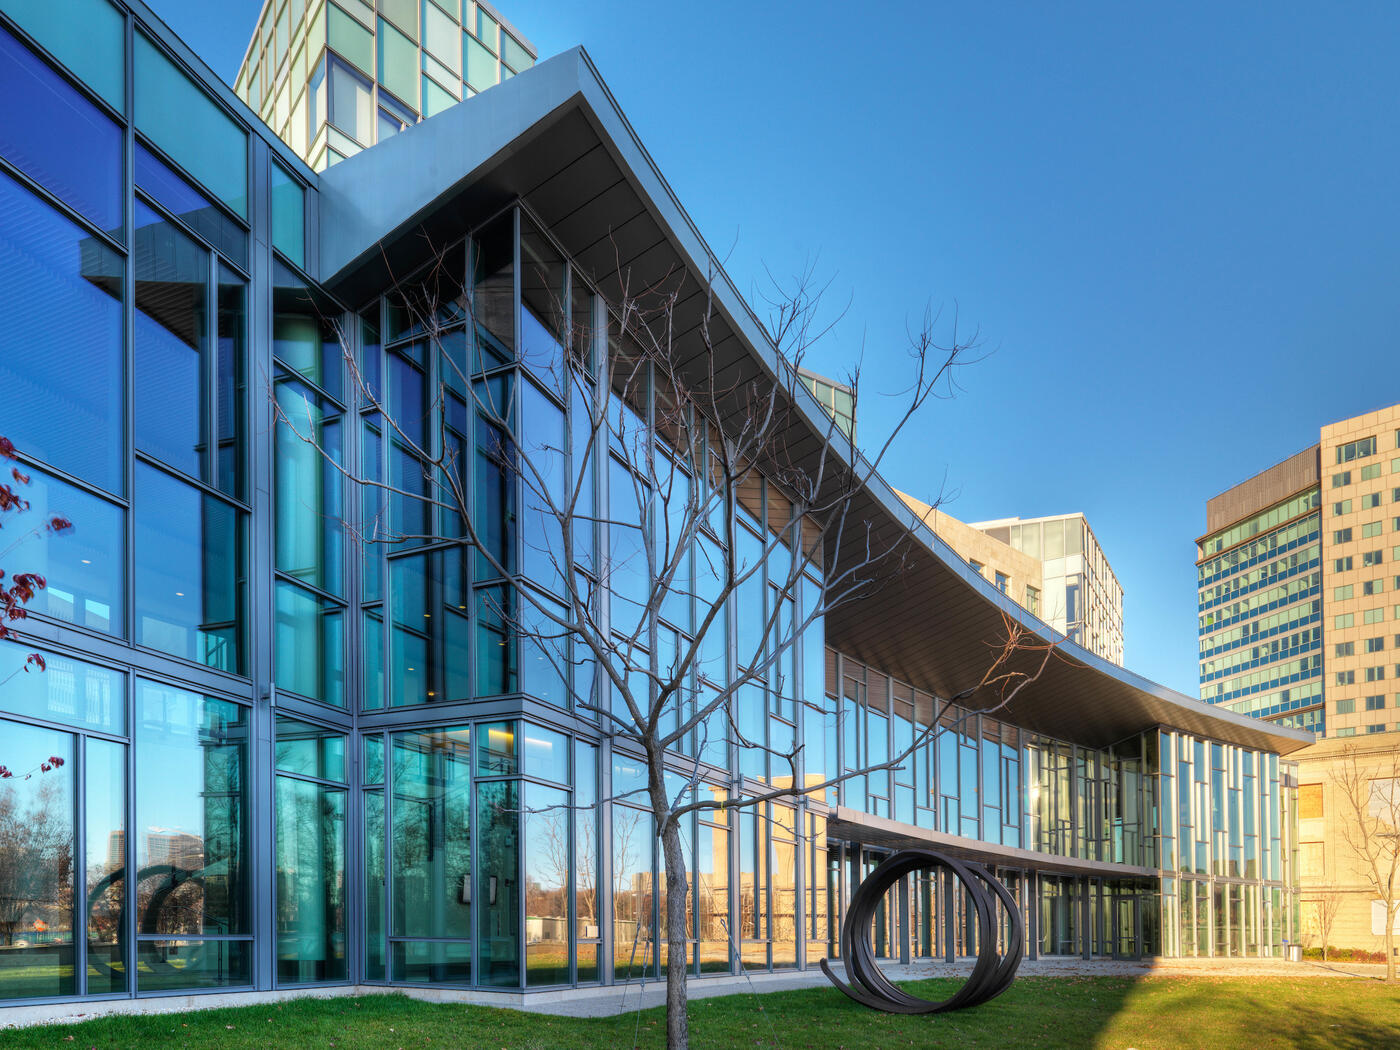 Explore the MIT Sloan Campus